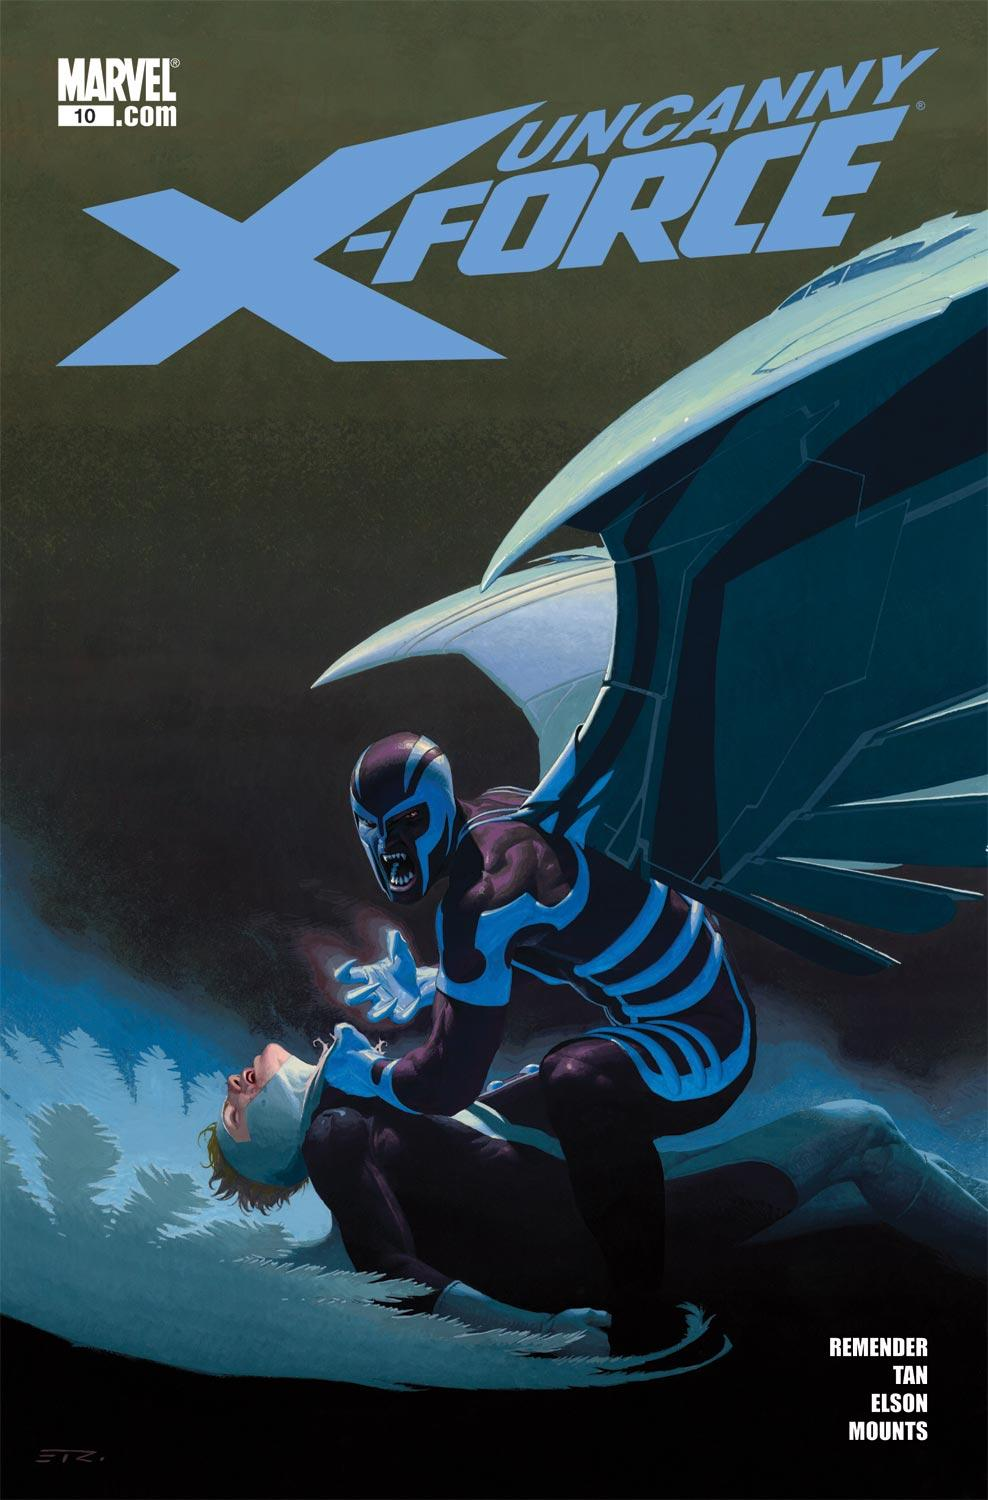 Uncanny X-Force (2010) #10